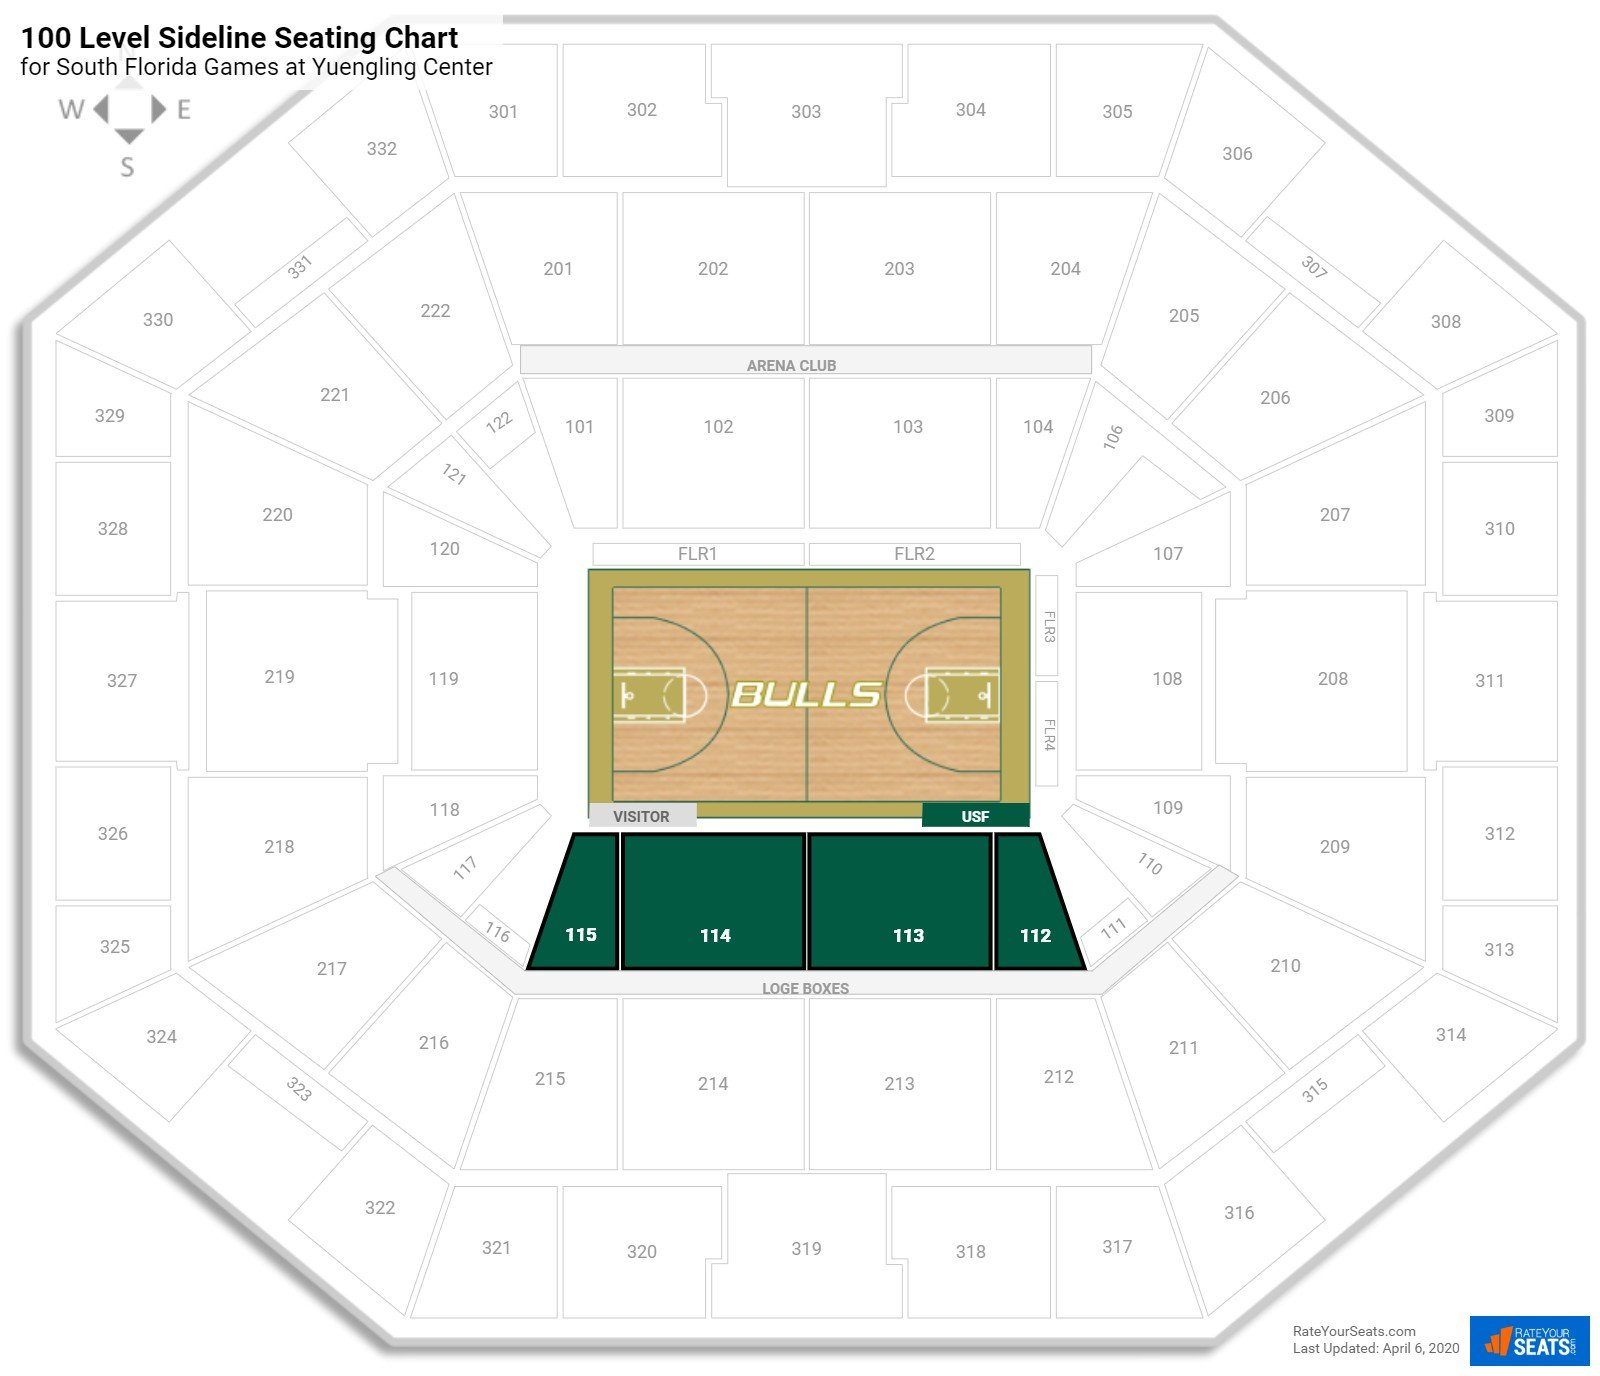 Yuengling Center 100 Level Sideline Seating Chart